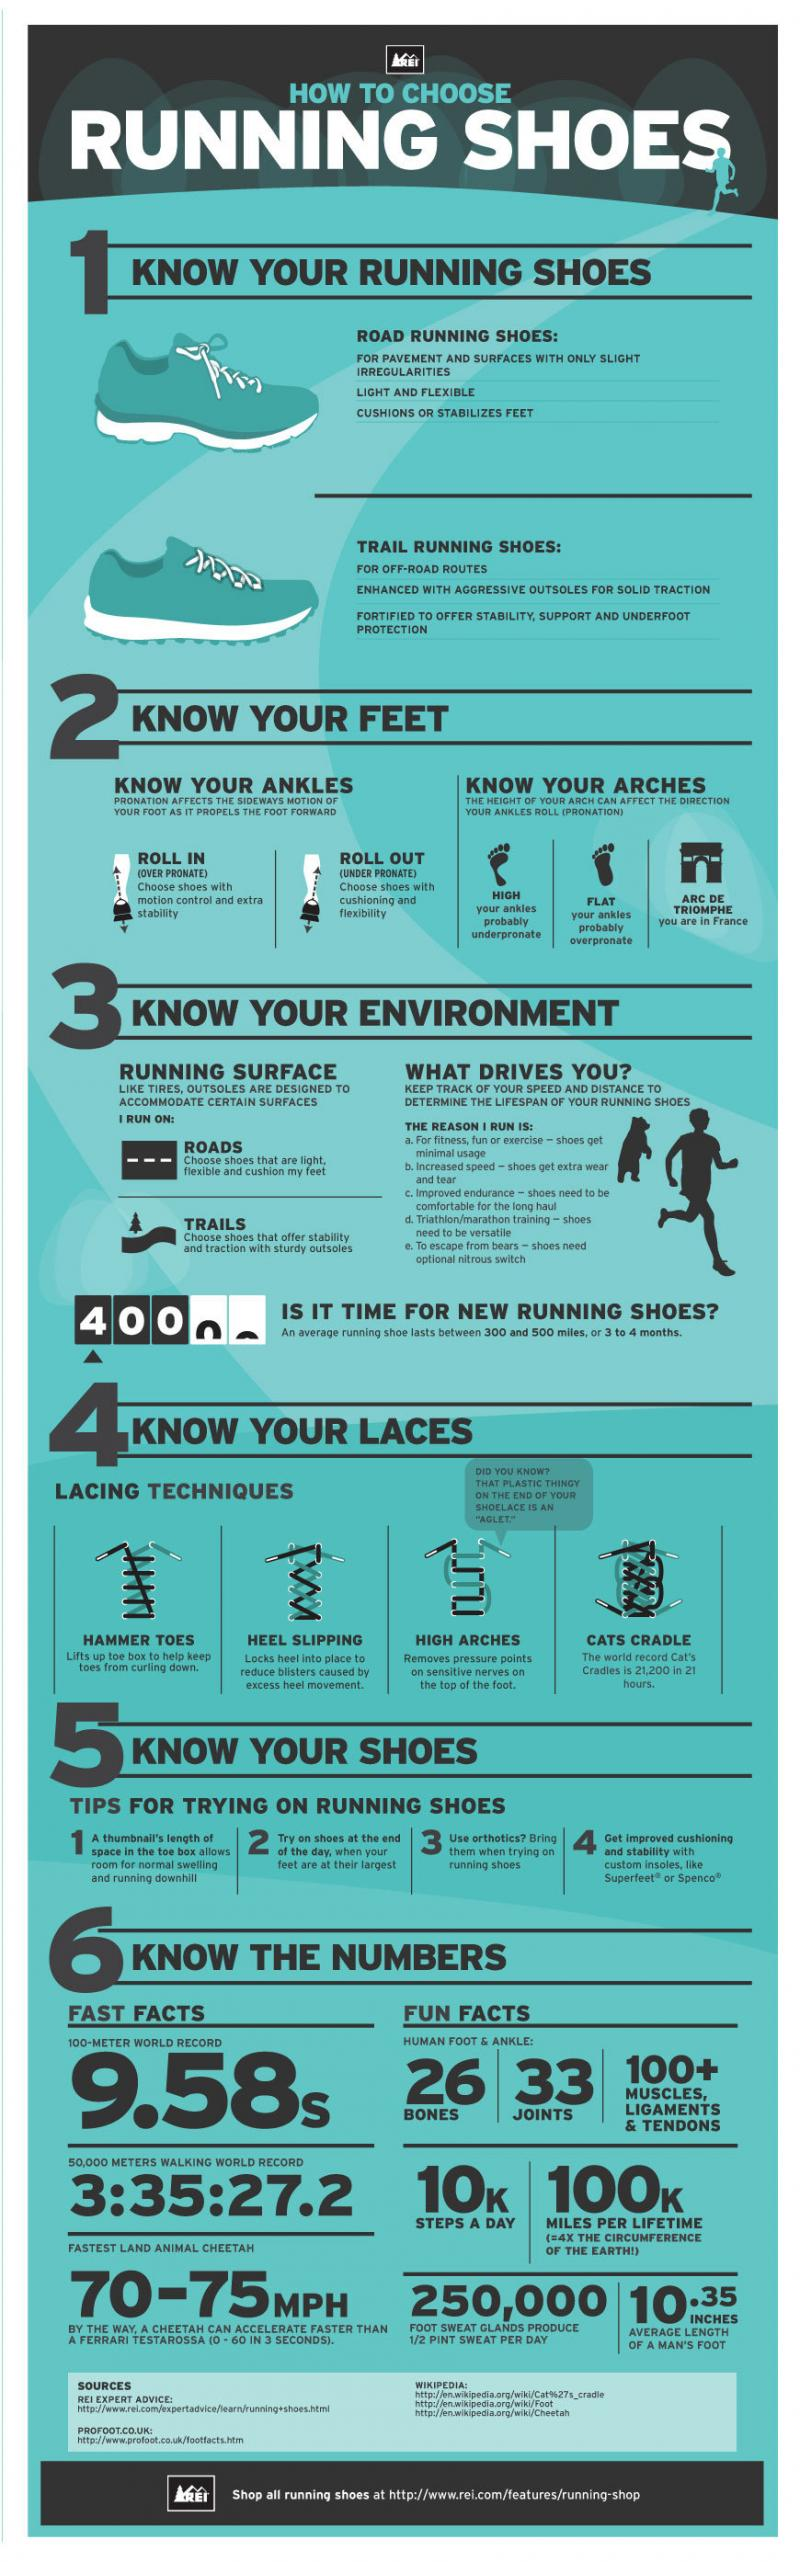 How to choose running shoes #infographic